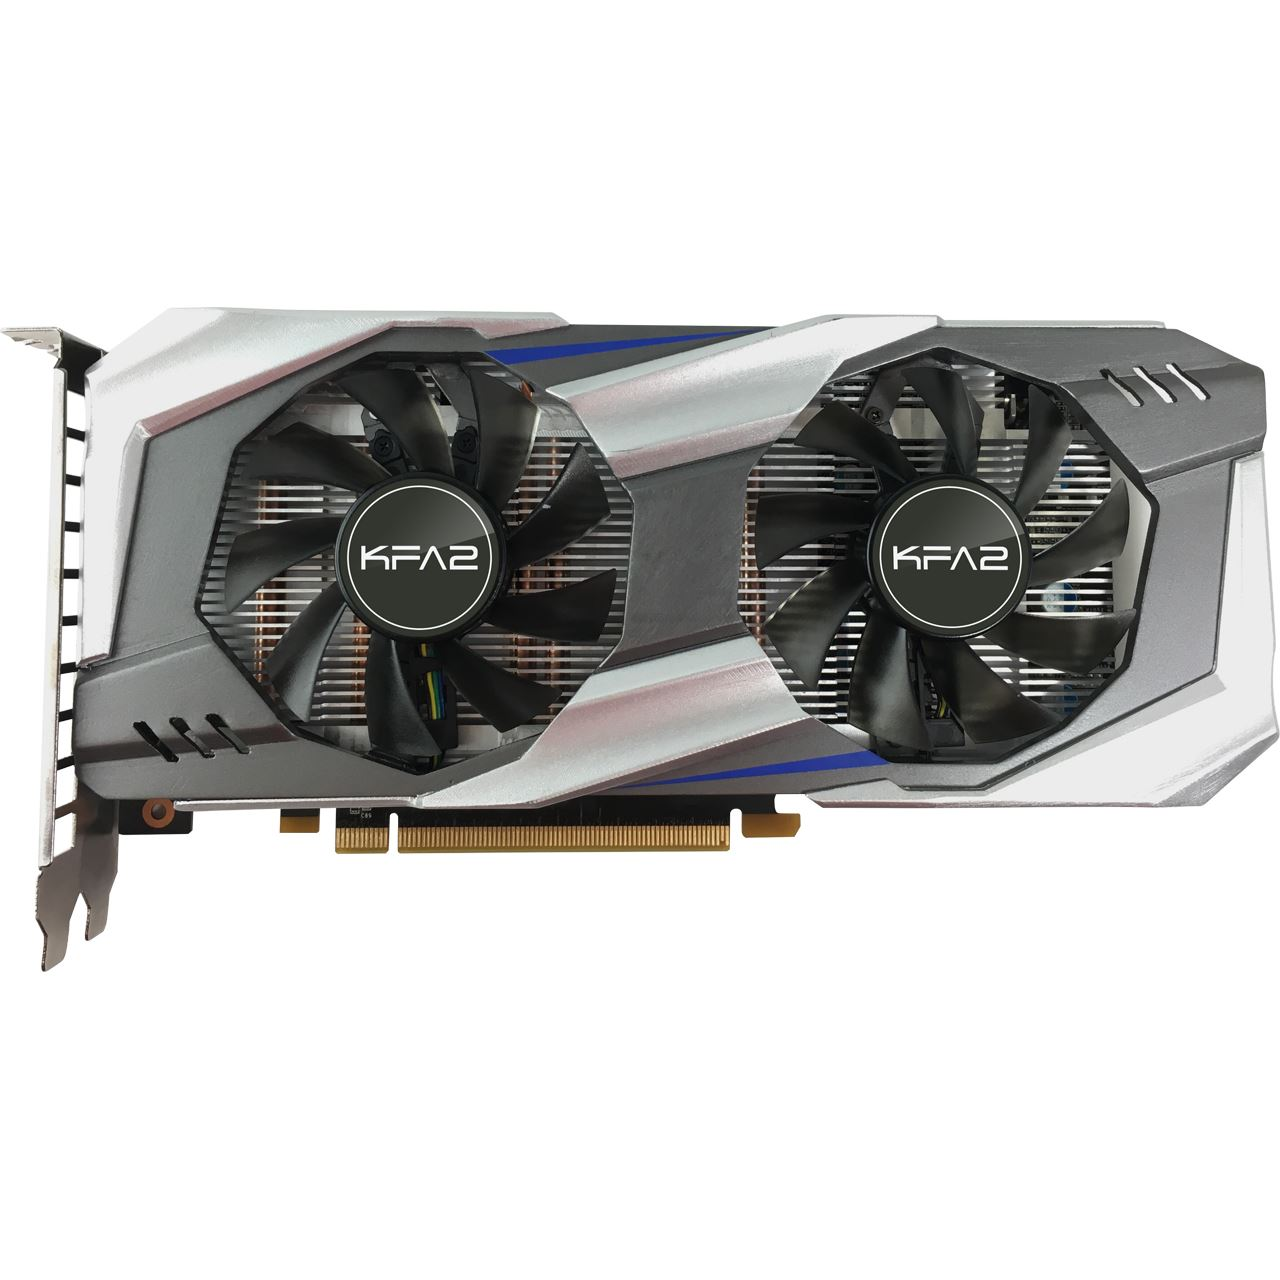 KFA2 GeForce GTX 1060 OC 6GB – PC details